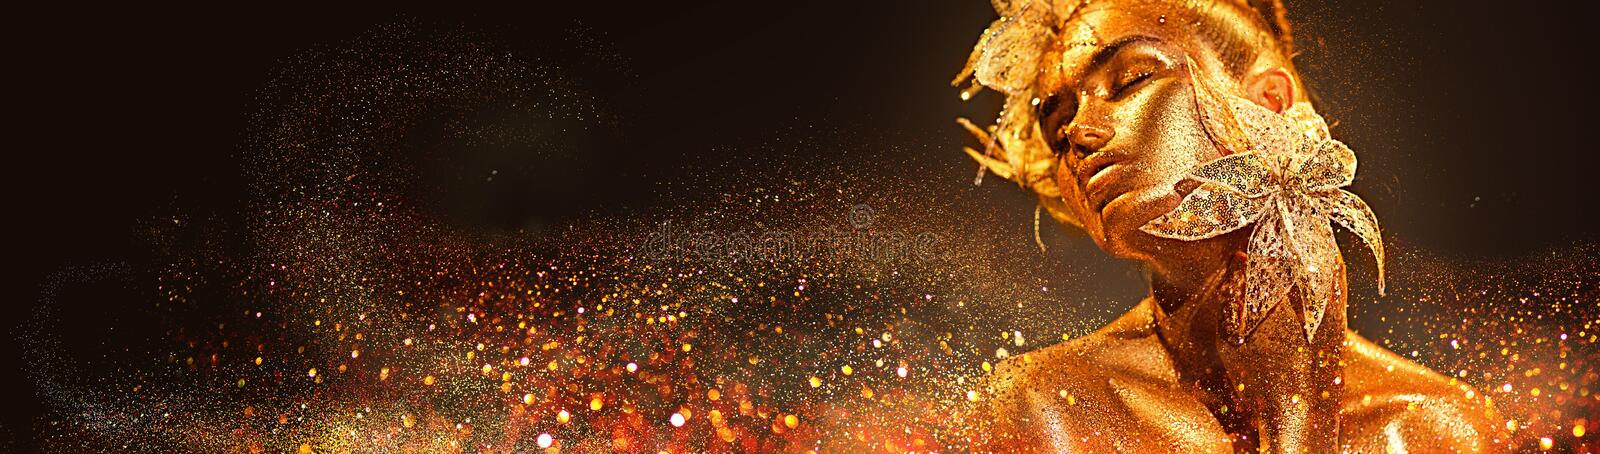 Fashion model woman in colorful bright golden sparkles posing with fantasy flower. Portrait of beautiful girl with glowing makeup stock photography